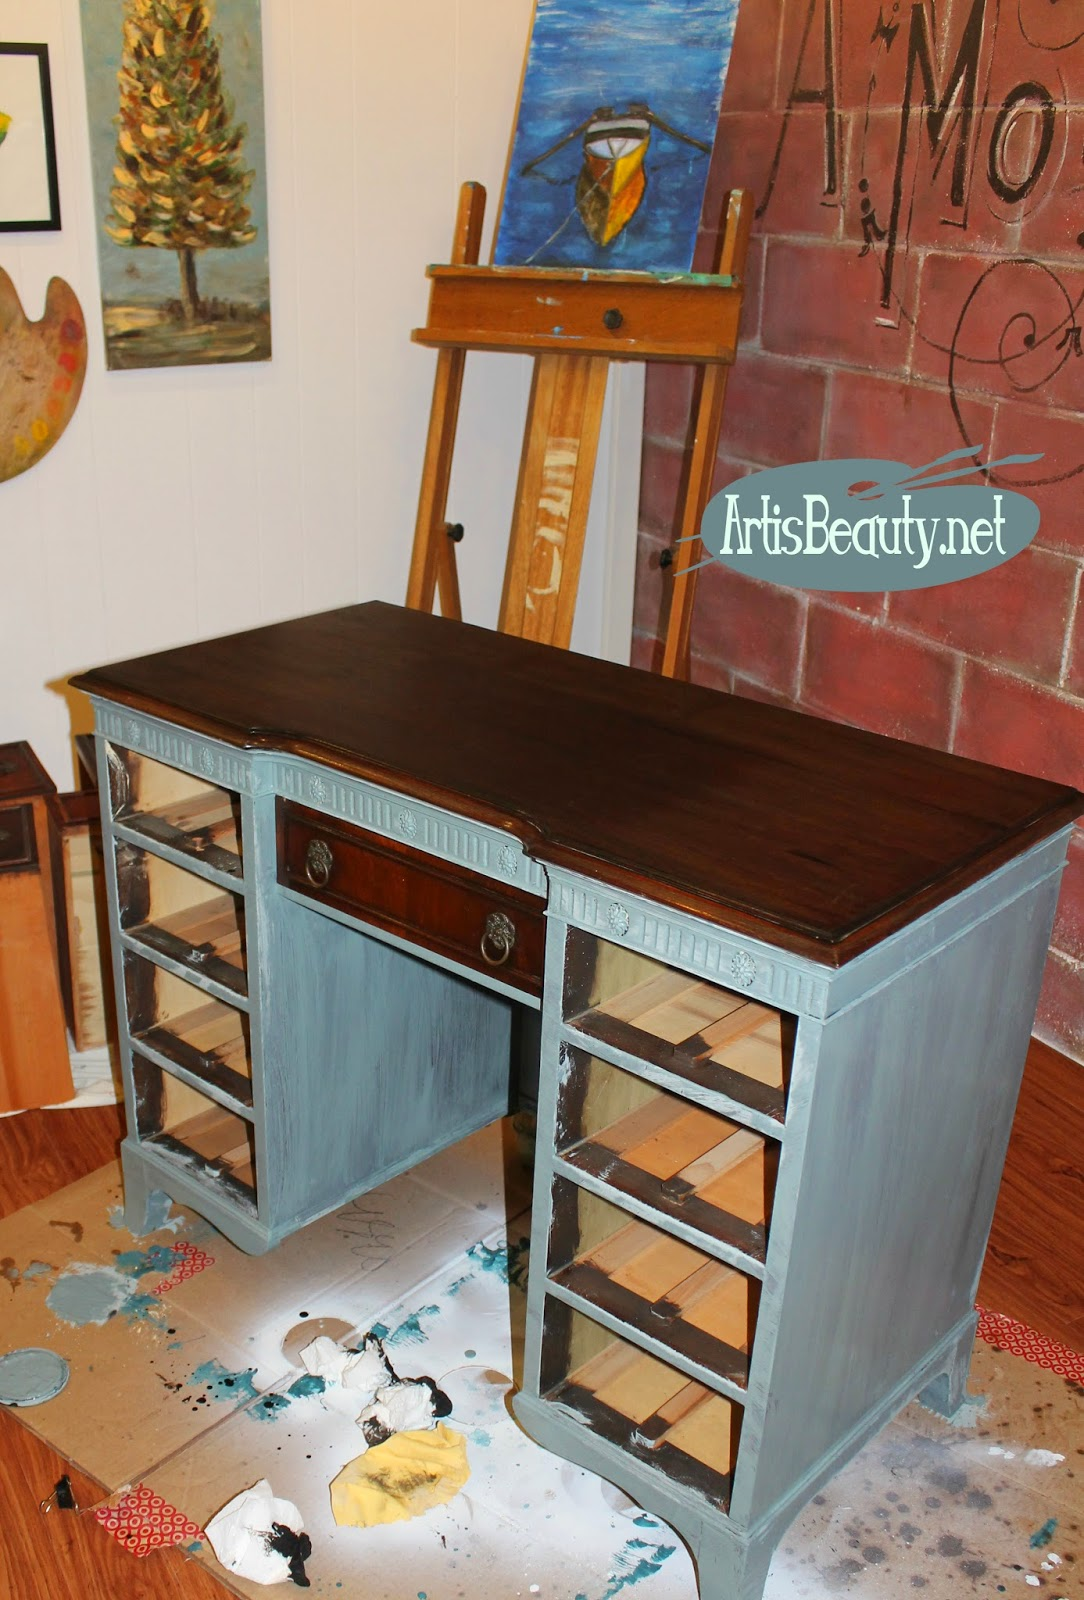 ballard design desks exquisite home office decor 2016 home 100 ballard designs west art is beauty beat up desk gets and executive makeover i painted the whole base and